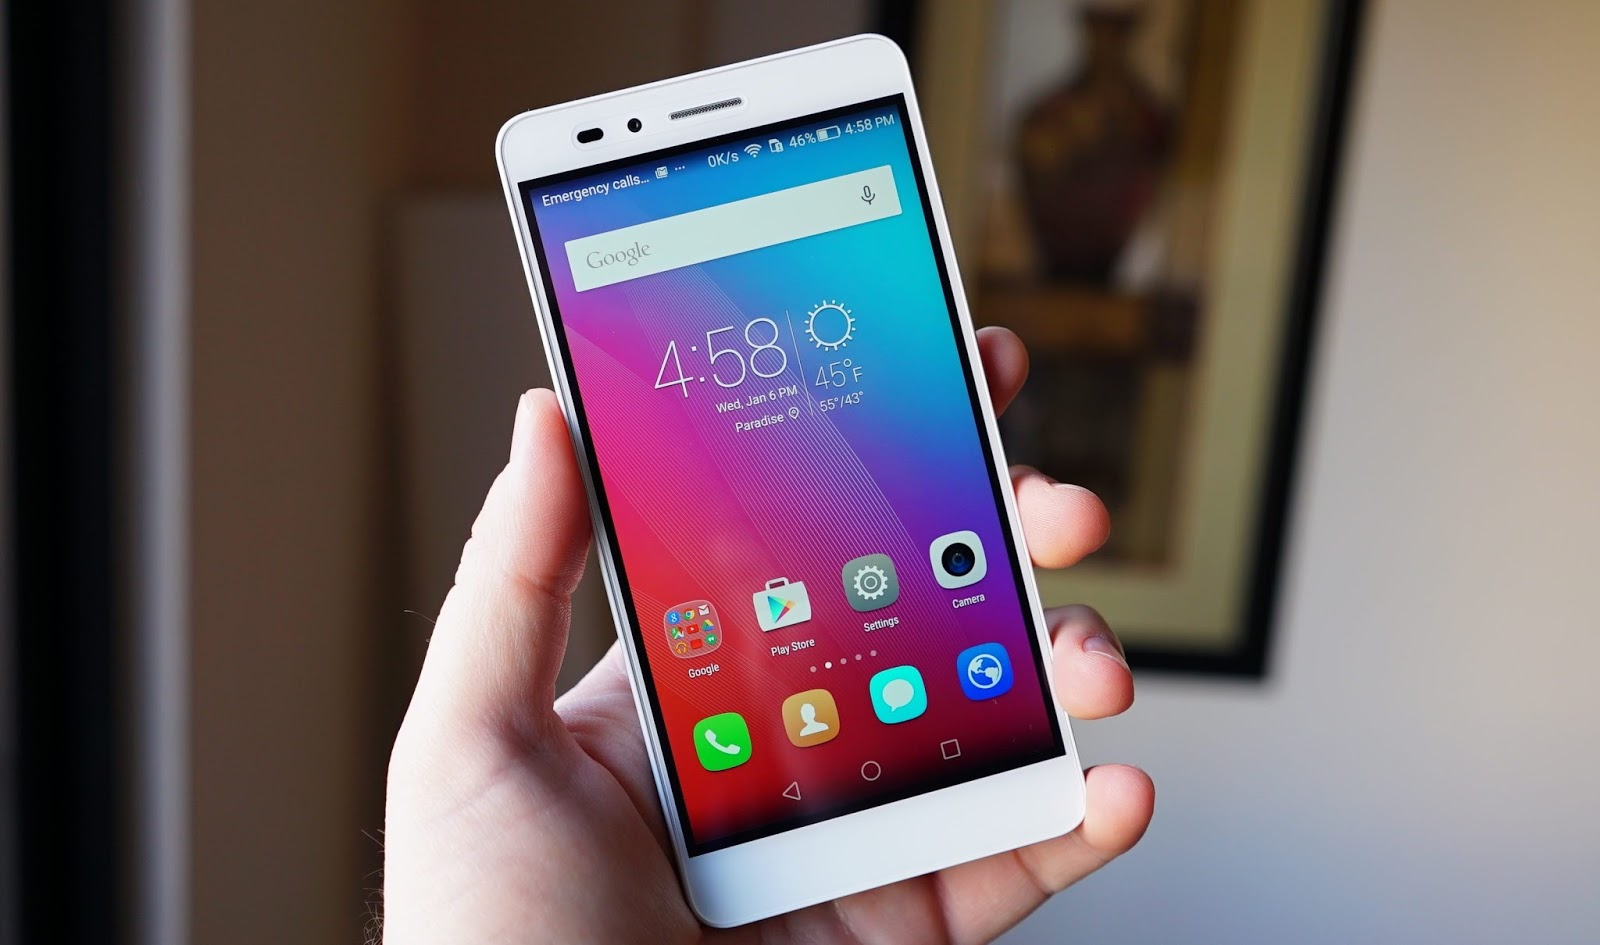 Download and Install Official LineageOS 14 1 on Honor 5X